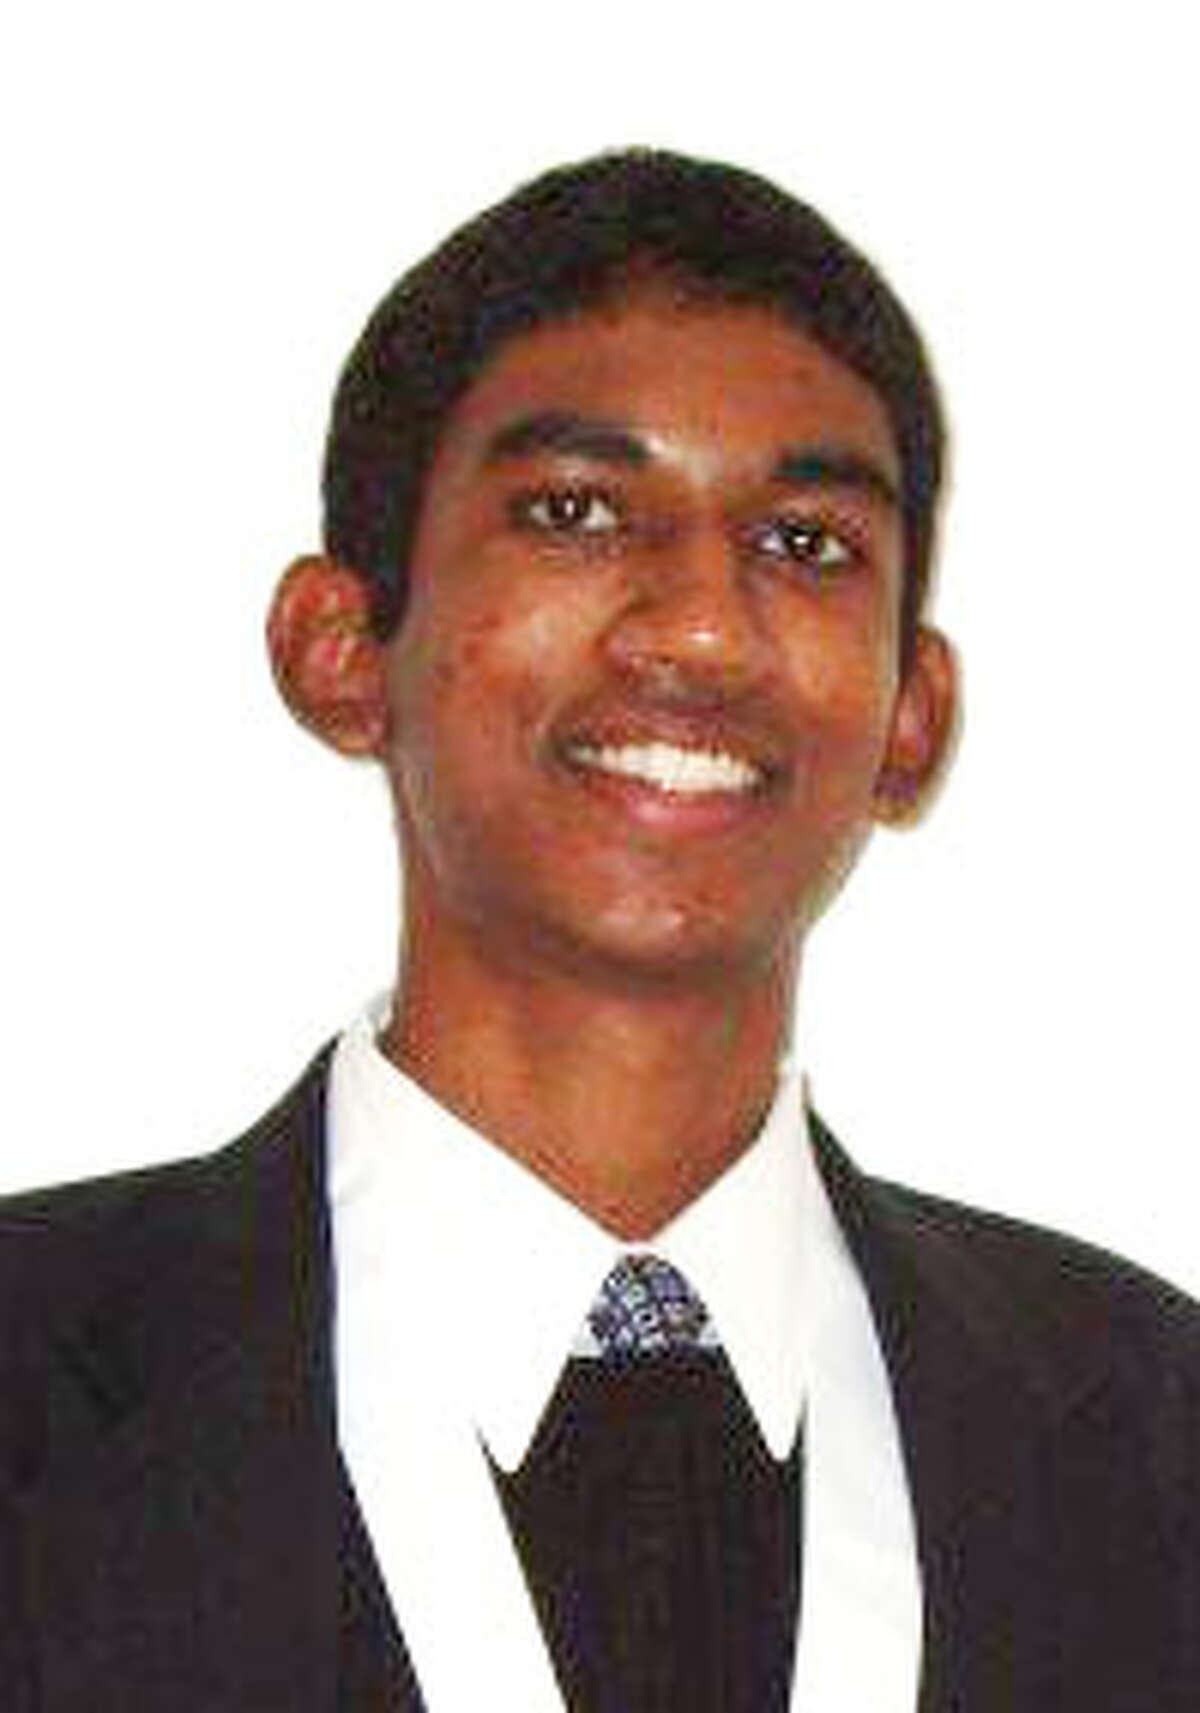 Anand Habib is among the 32 Americans selected